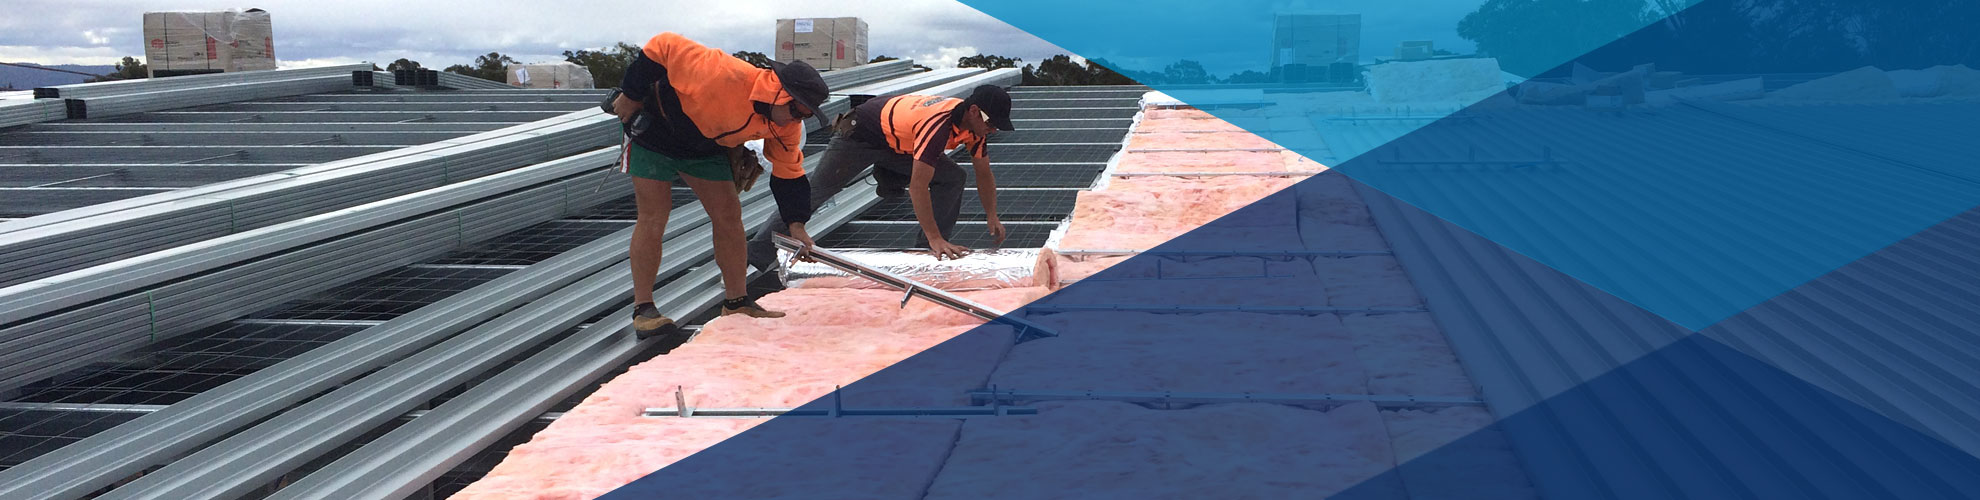 Quikdeck Roofing is a metal roofing company based in Sydney with over 25 years experience in the building and construction industry.